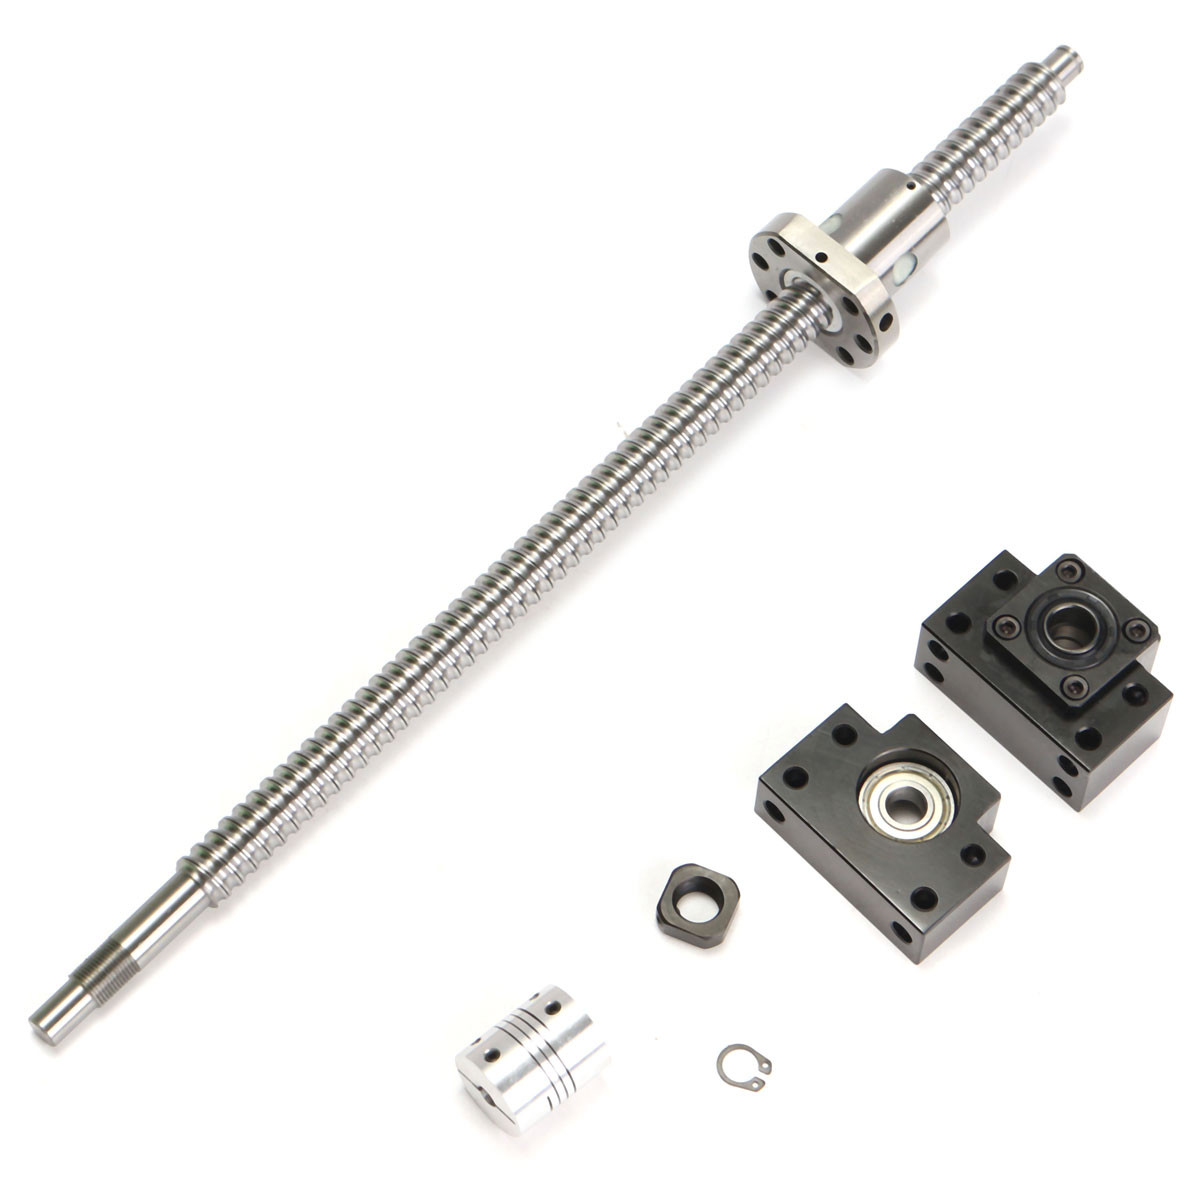 WOLIKE 400mm SFU1605 Ball Screw with <font><b>BK12</b></font> BF12 Supports and 6.35x10mm Coupler for CNC Linear Guides image